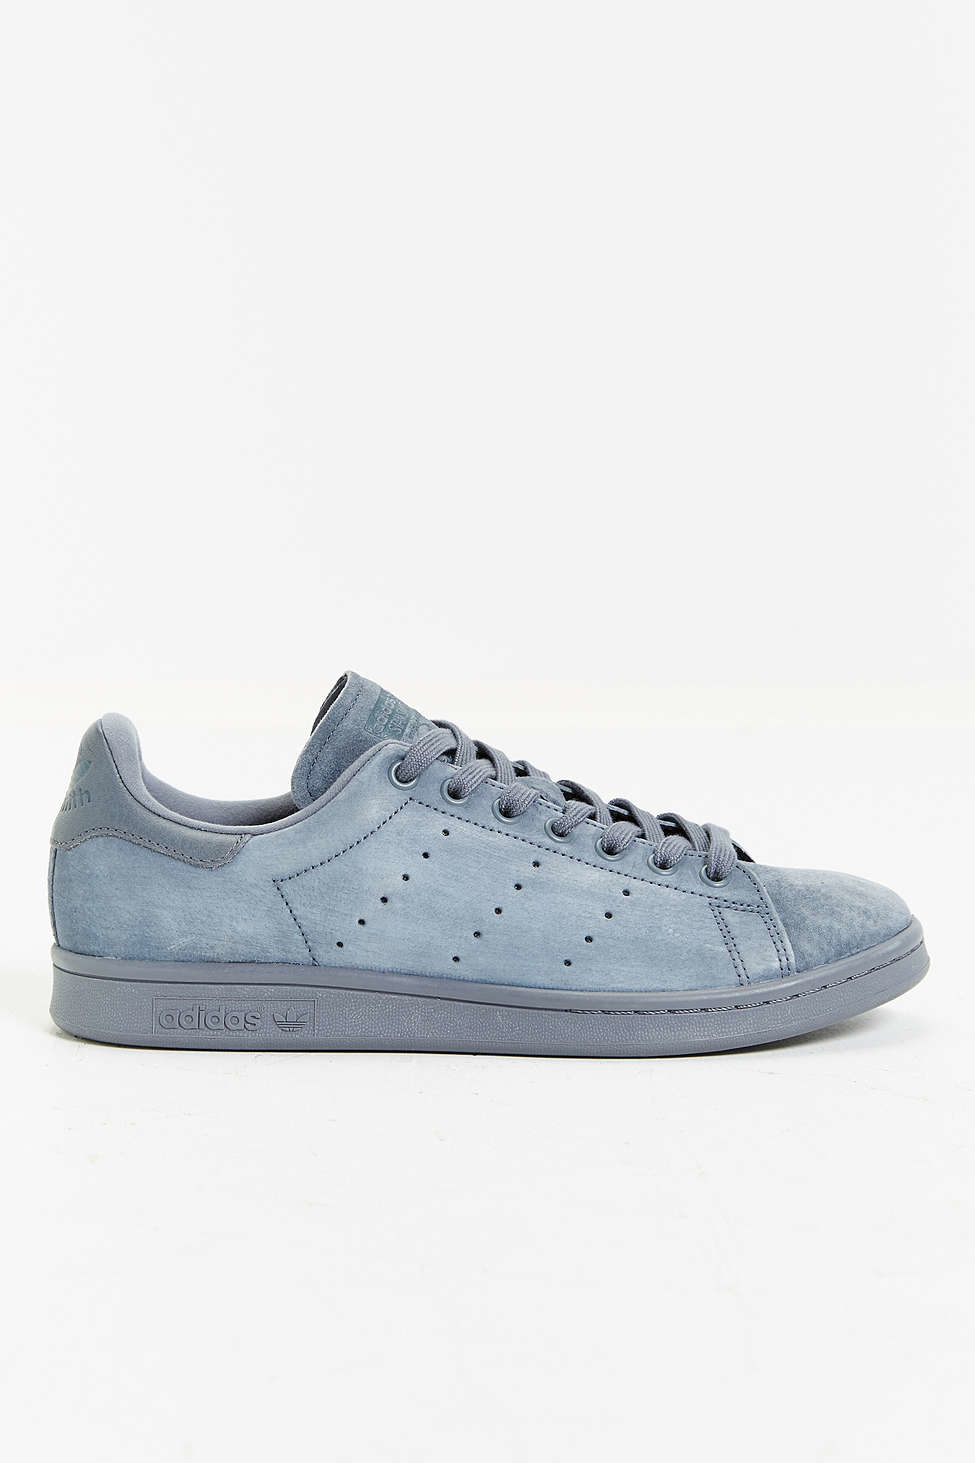 lyst adidas originals suede stan smith sneaker in gray for men. Black Bedroom Furniture Sets. Home Design Ideas